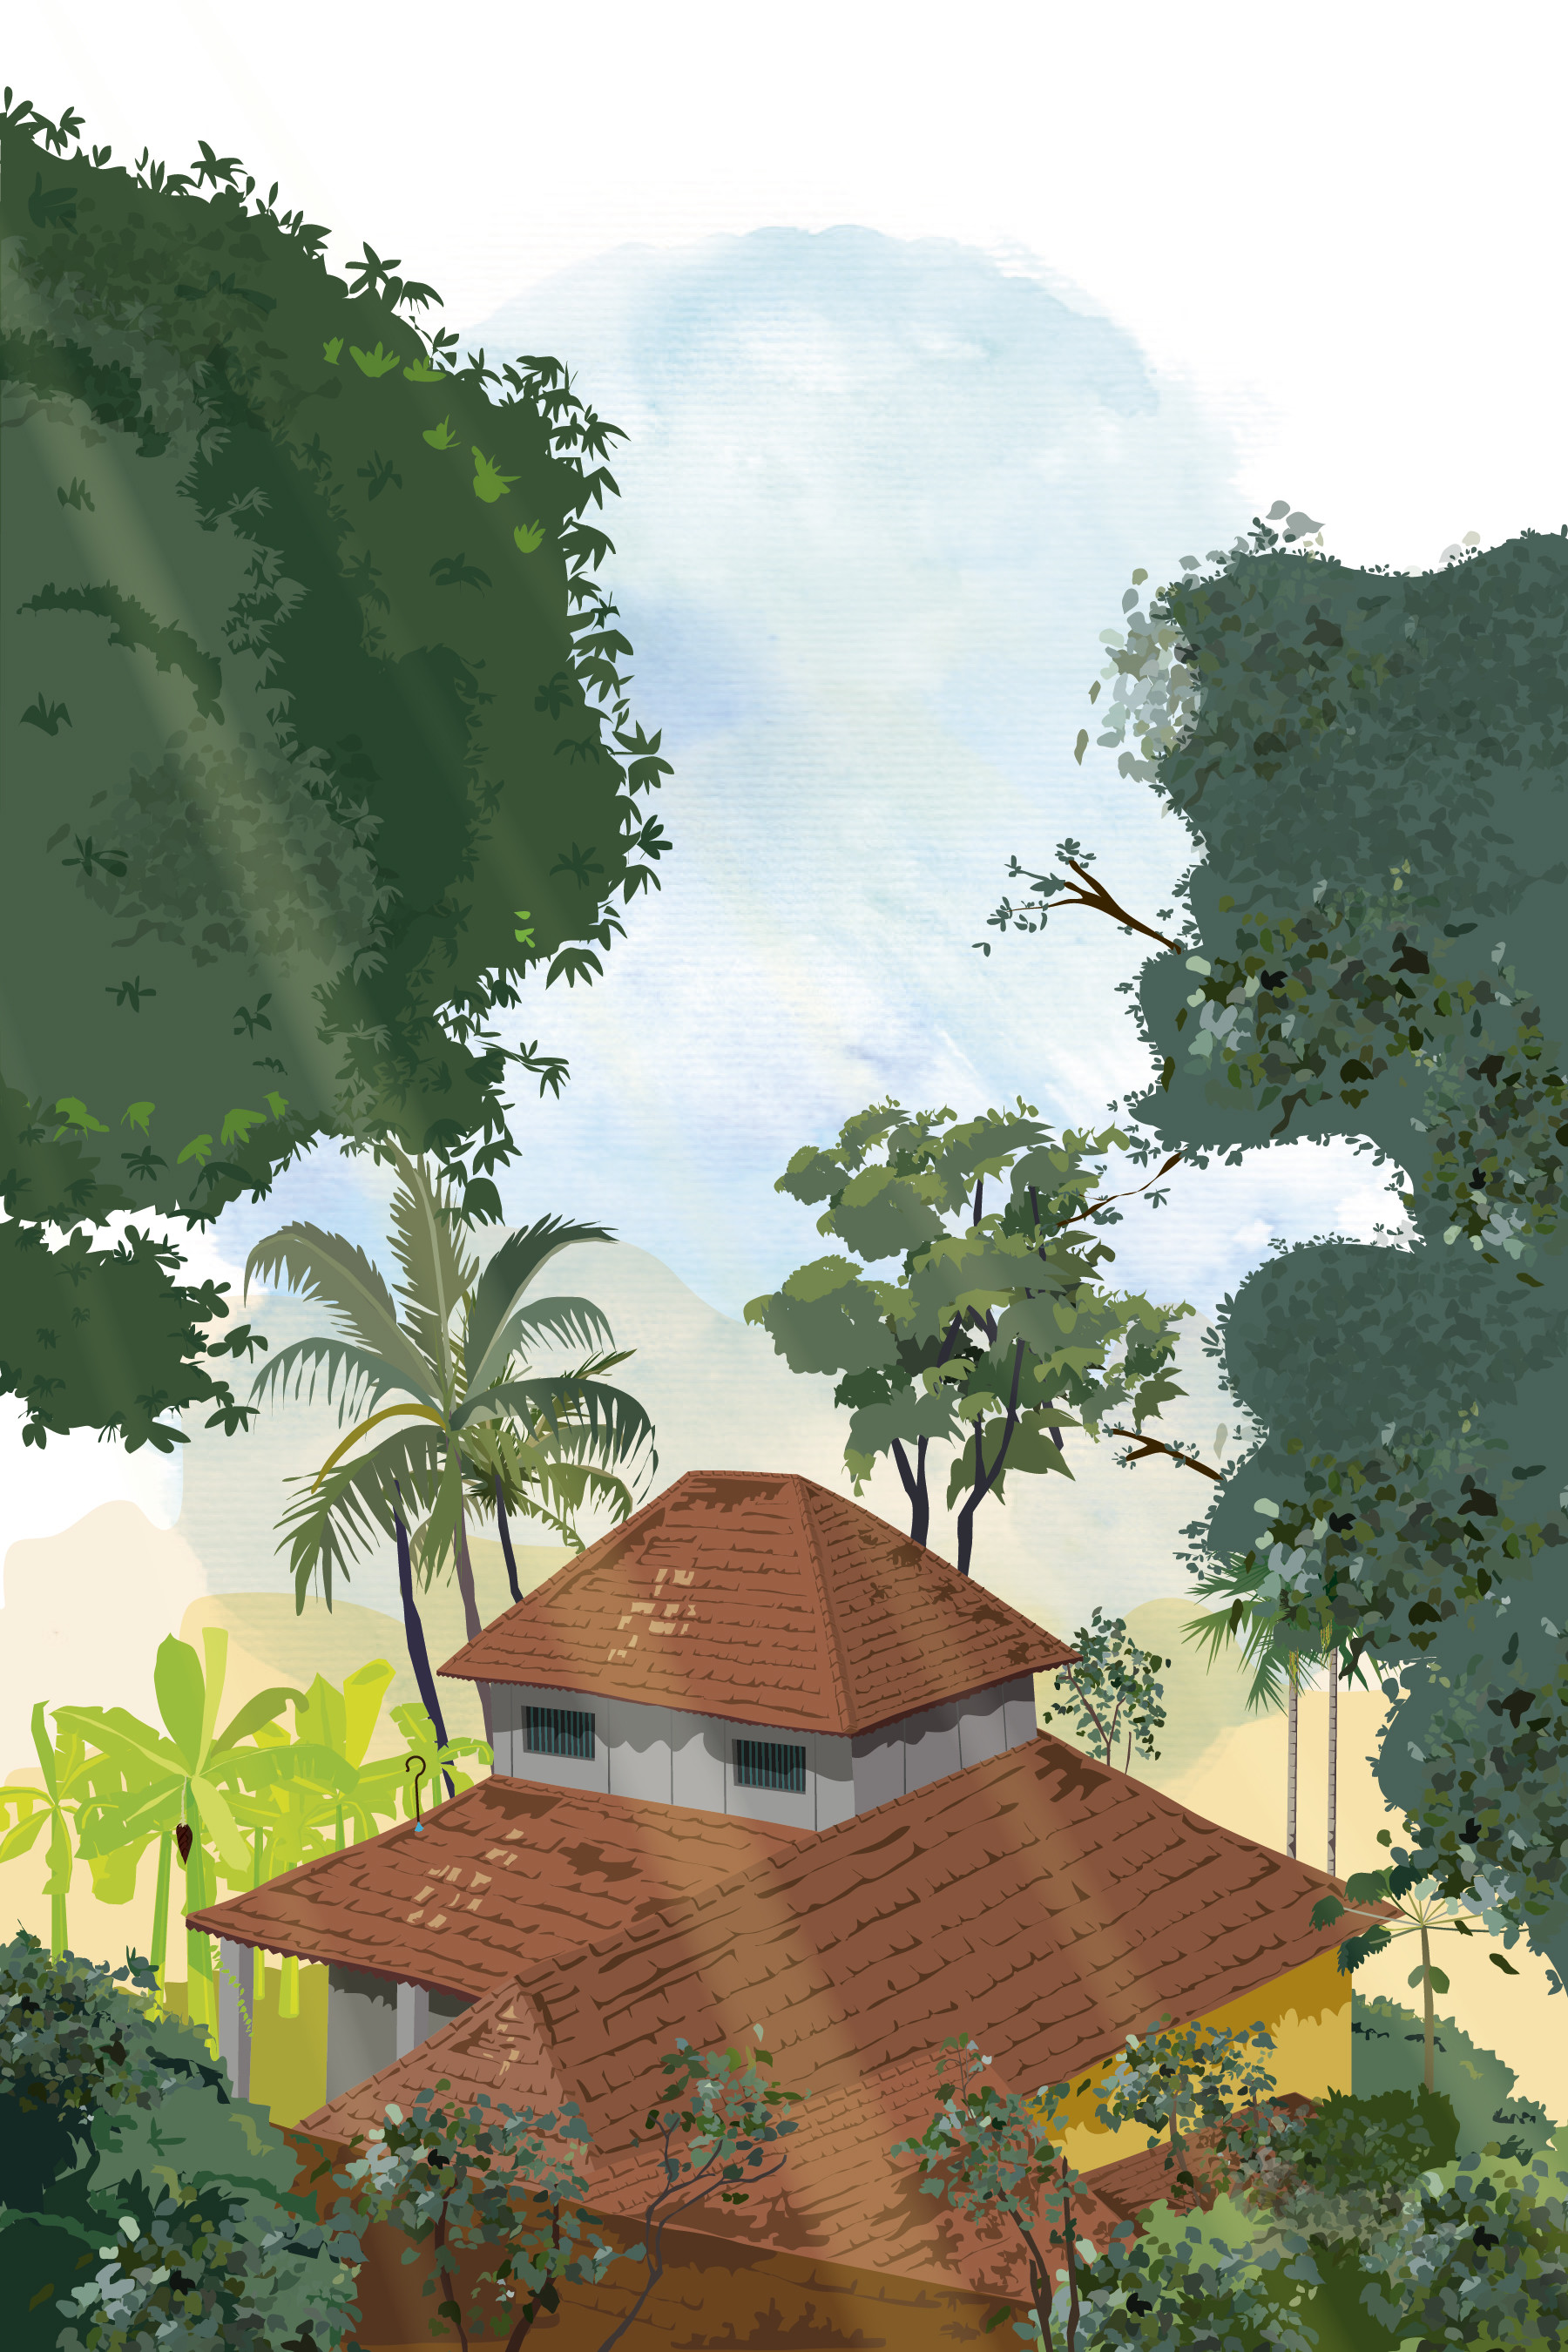 Rajesh r sawant konkan houses through trees 01